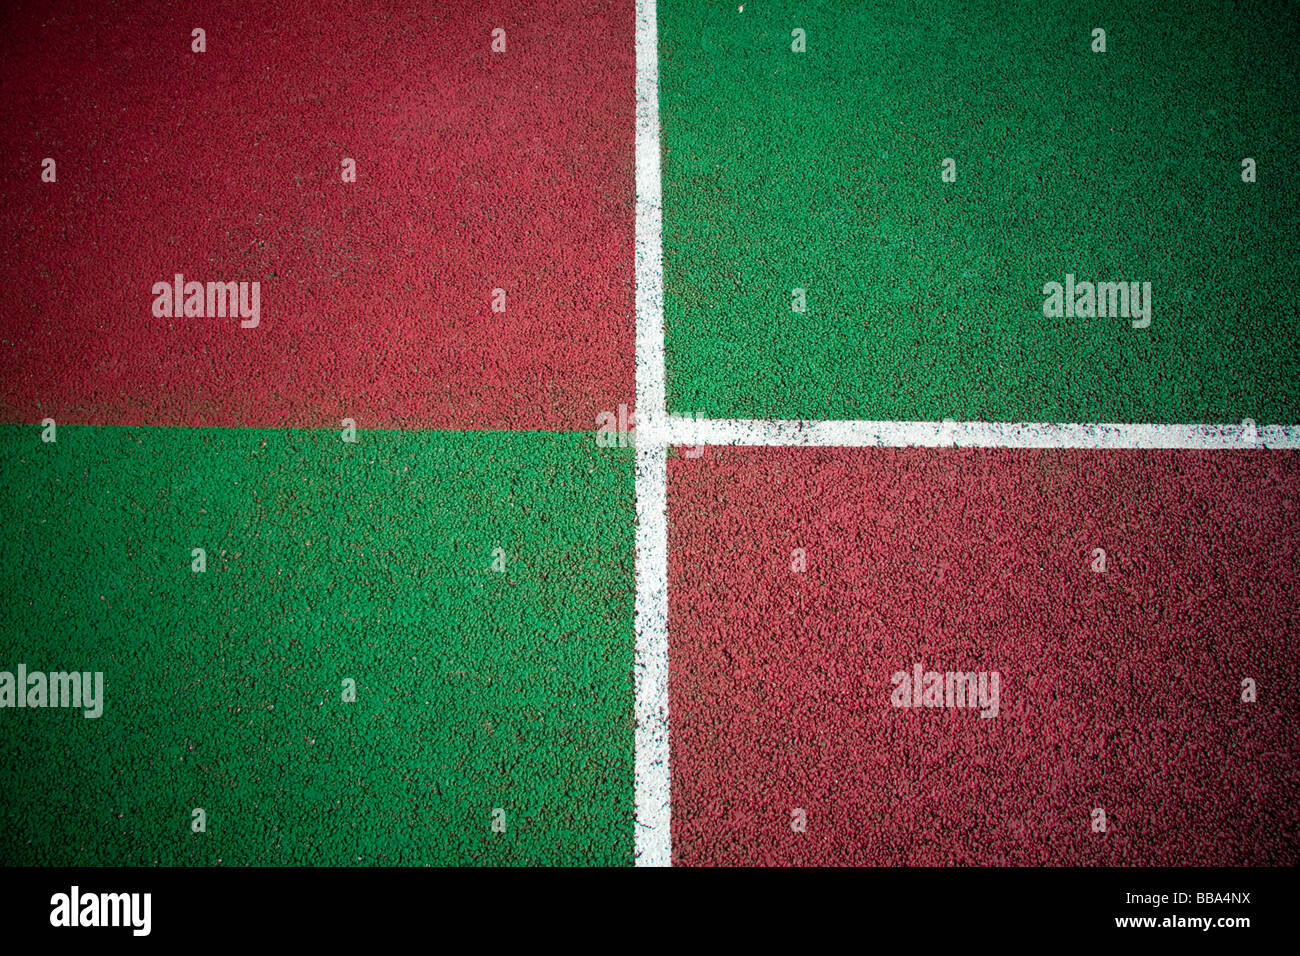 Couleurs abstraites d'une cour de tennis tous temps tarmac Photo Stock